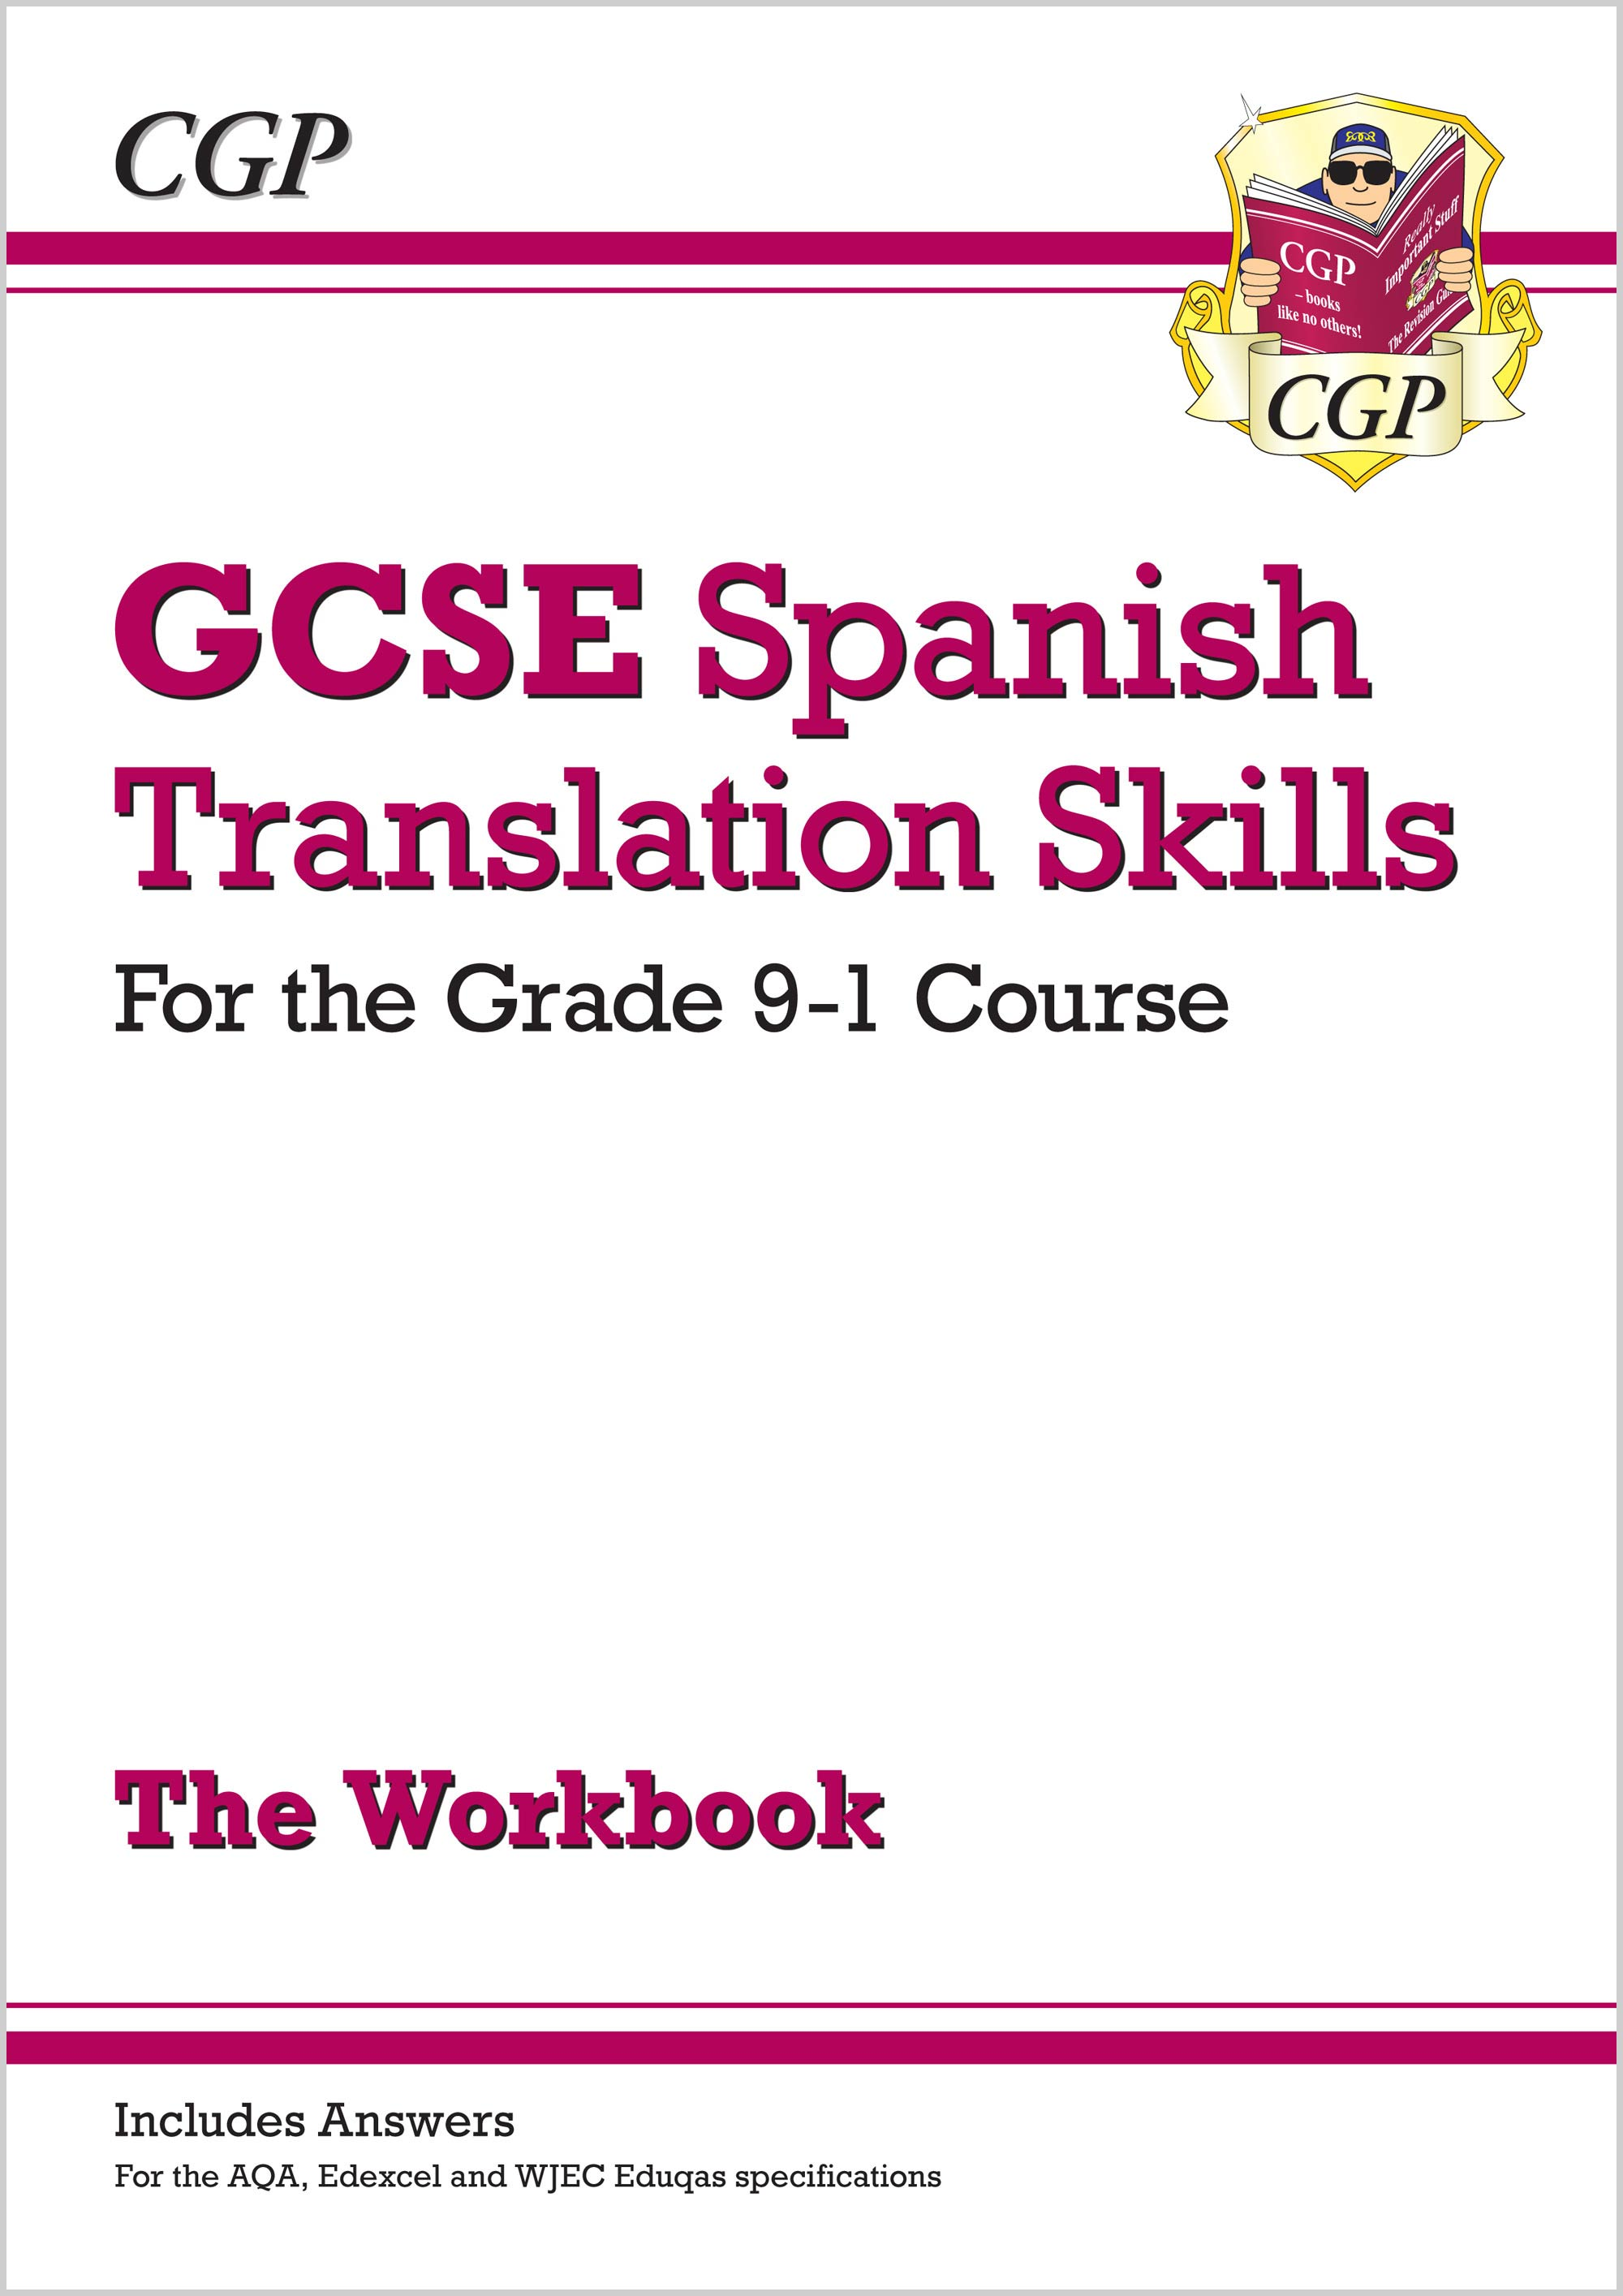 SPTW41 - New Grade 9-1 GCSE Spanish Translation Skills Workbook (includes Answers)